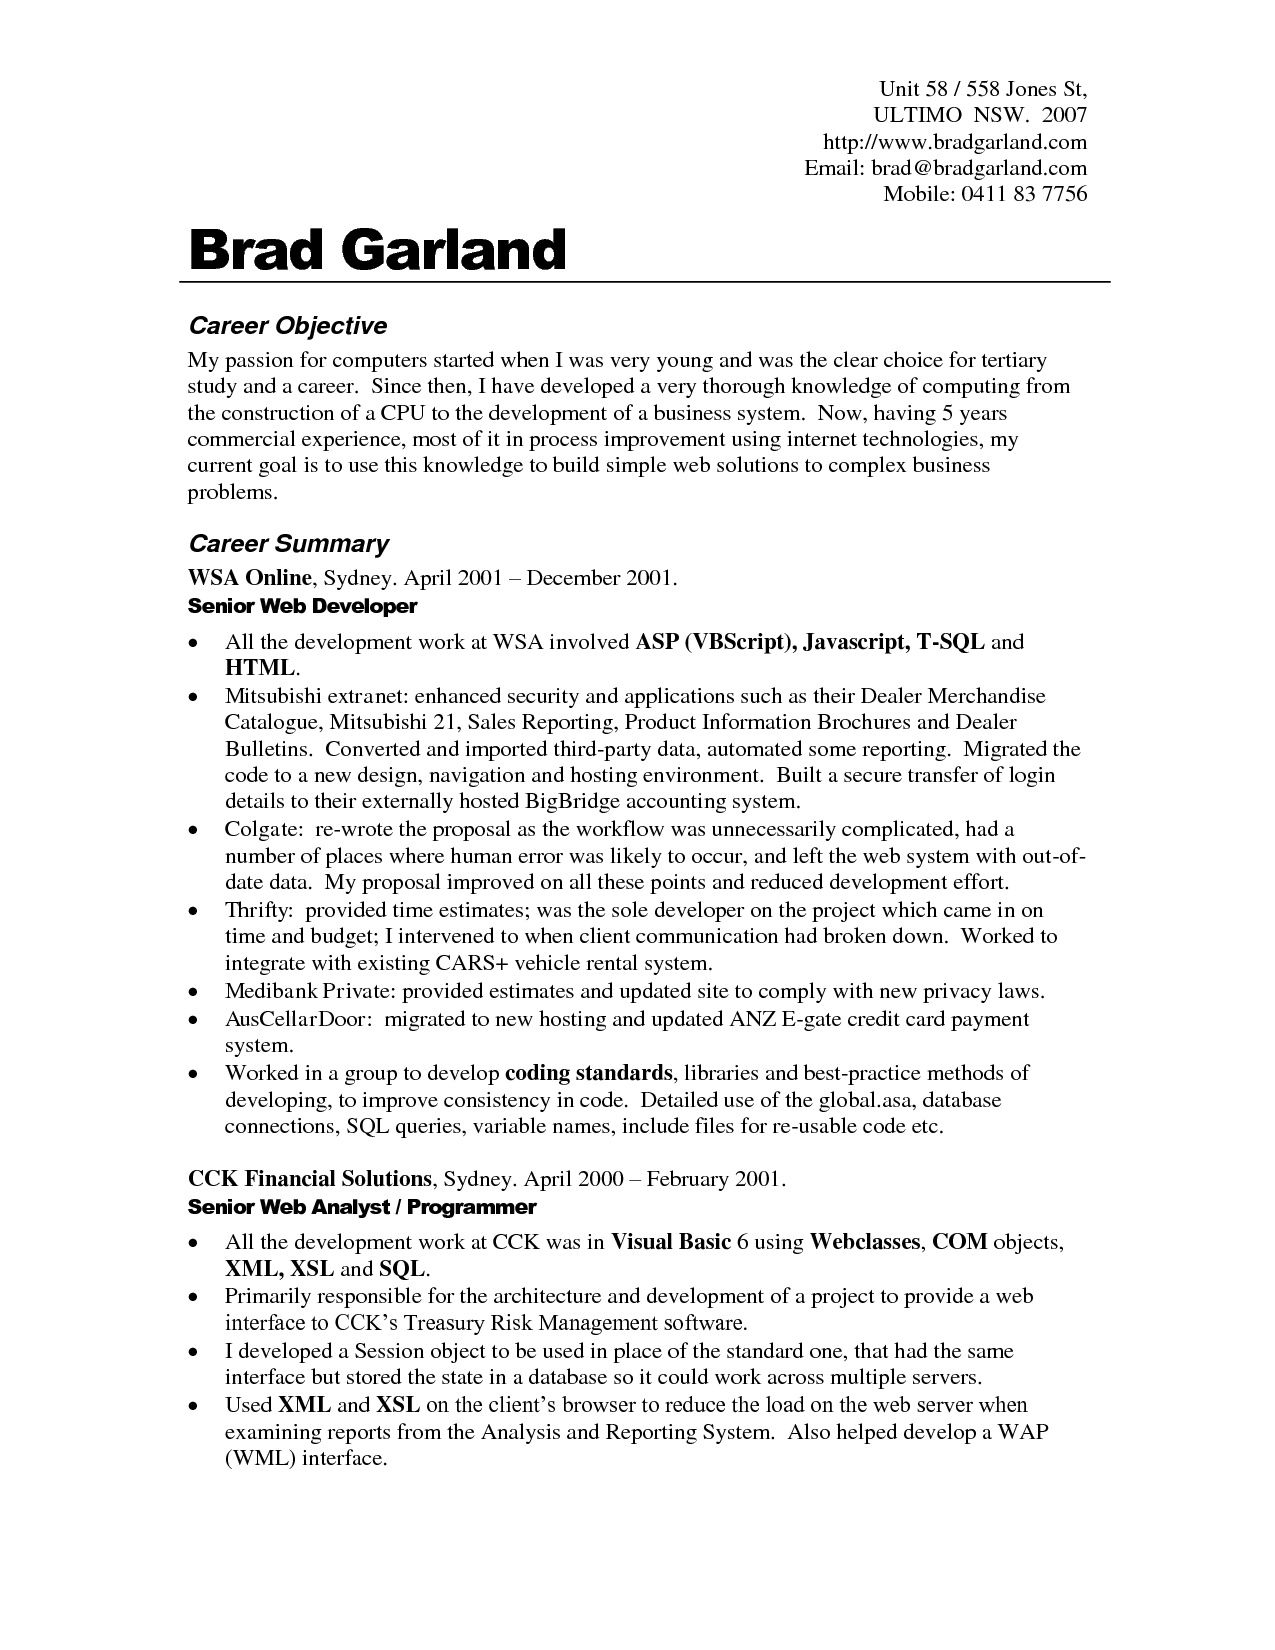 Job Objective Resume Examples Pinterest Sample Resume Resume